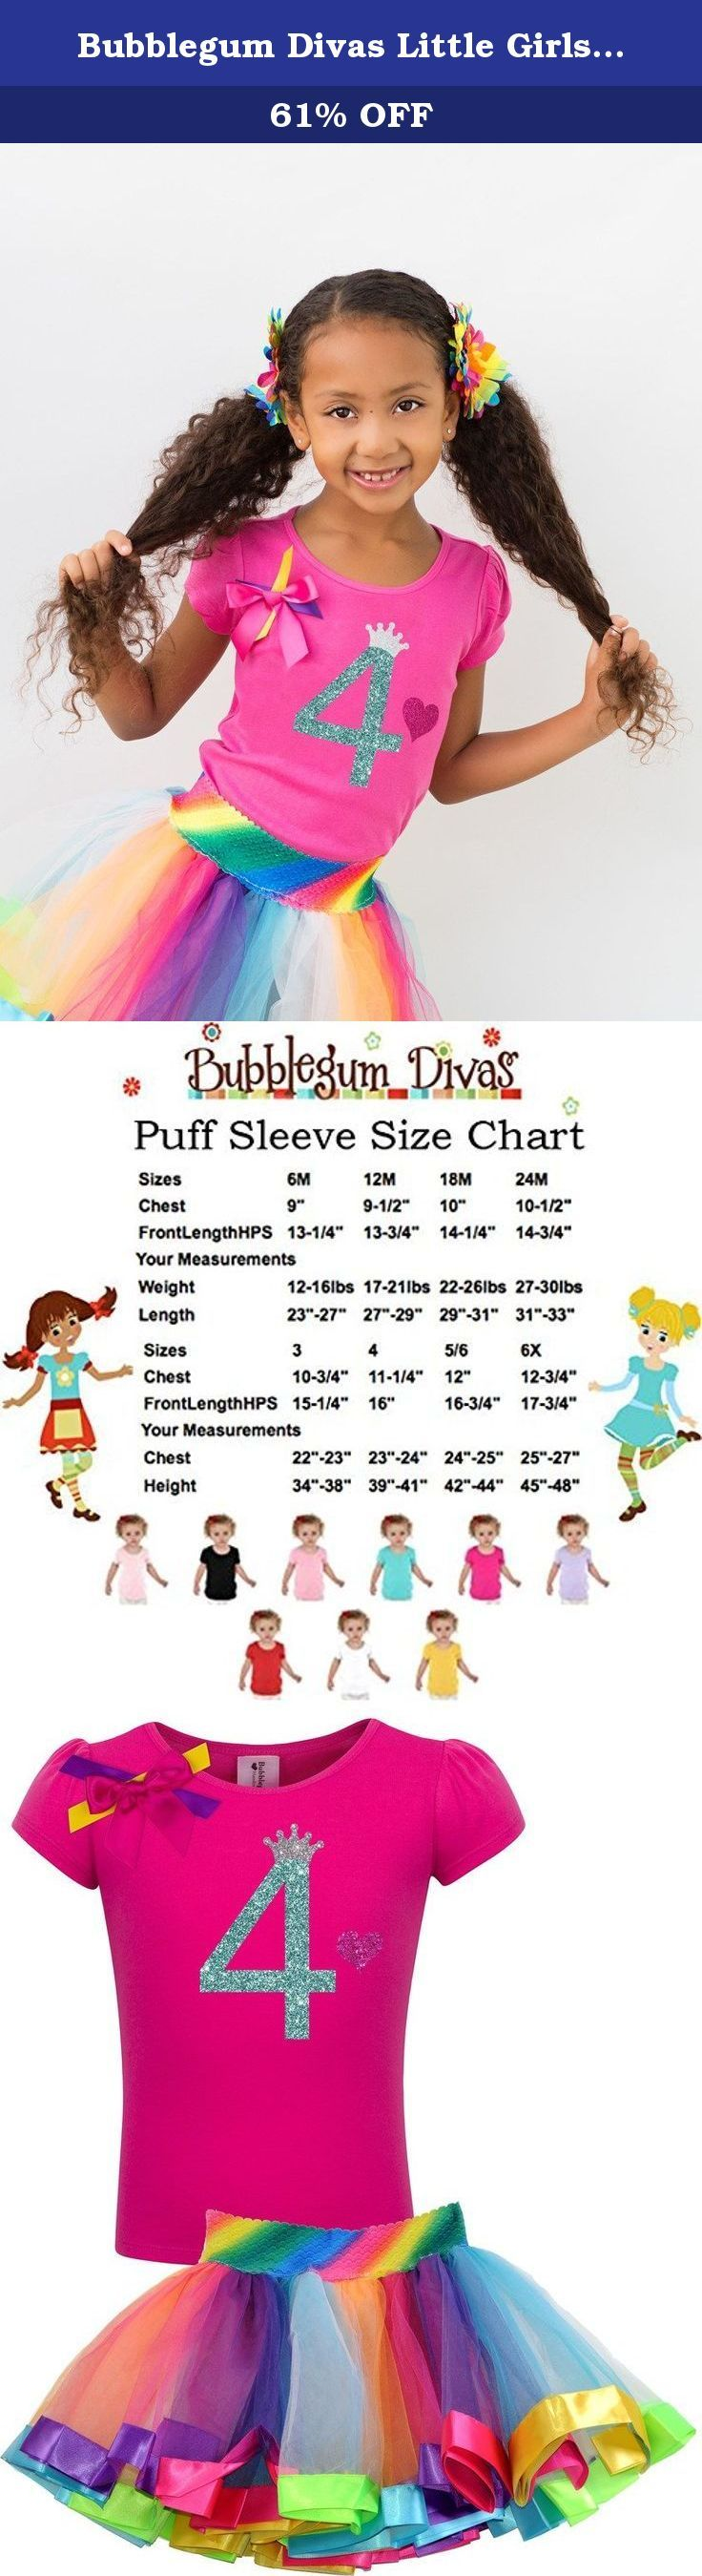 Bubblegum Divas Little Girls' 4th Birthday Rainbow Tutu Outfit 4. Rainbow 4th birthday Party Outfit. Celebrate the milestone that's a little one's fourth birthday with this girly, twirly tutu dress set. The glitter number four design and tulle rainbow tutu skirt are more festive than the candles on the cake, while its stretchy fabric is comfy for girls to wear.